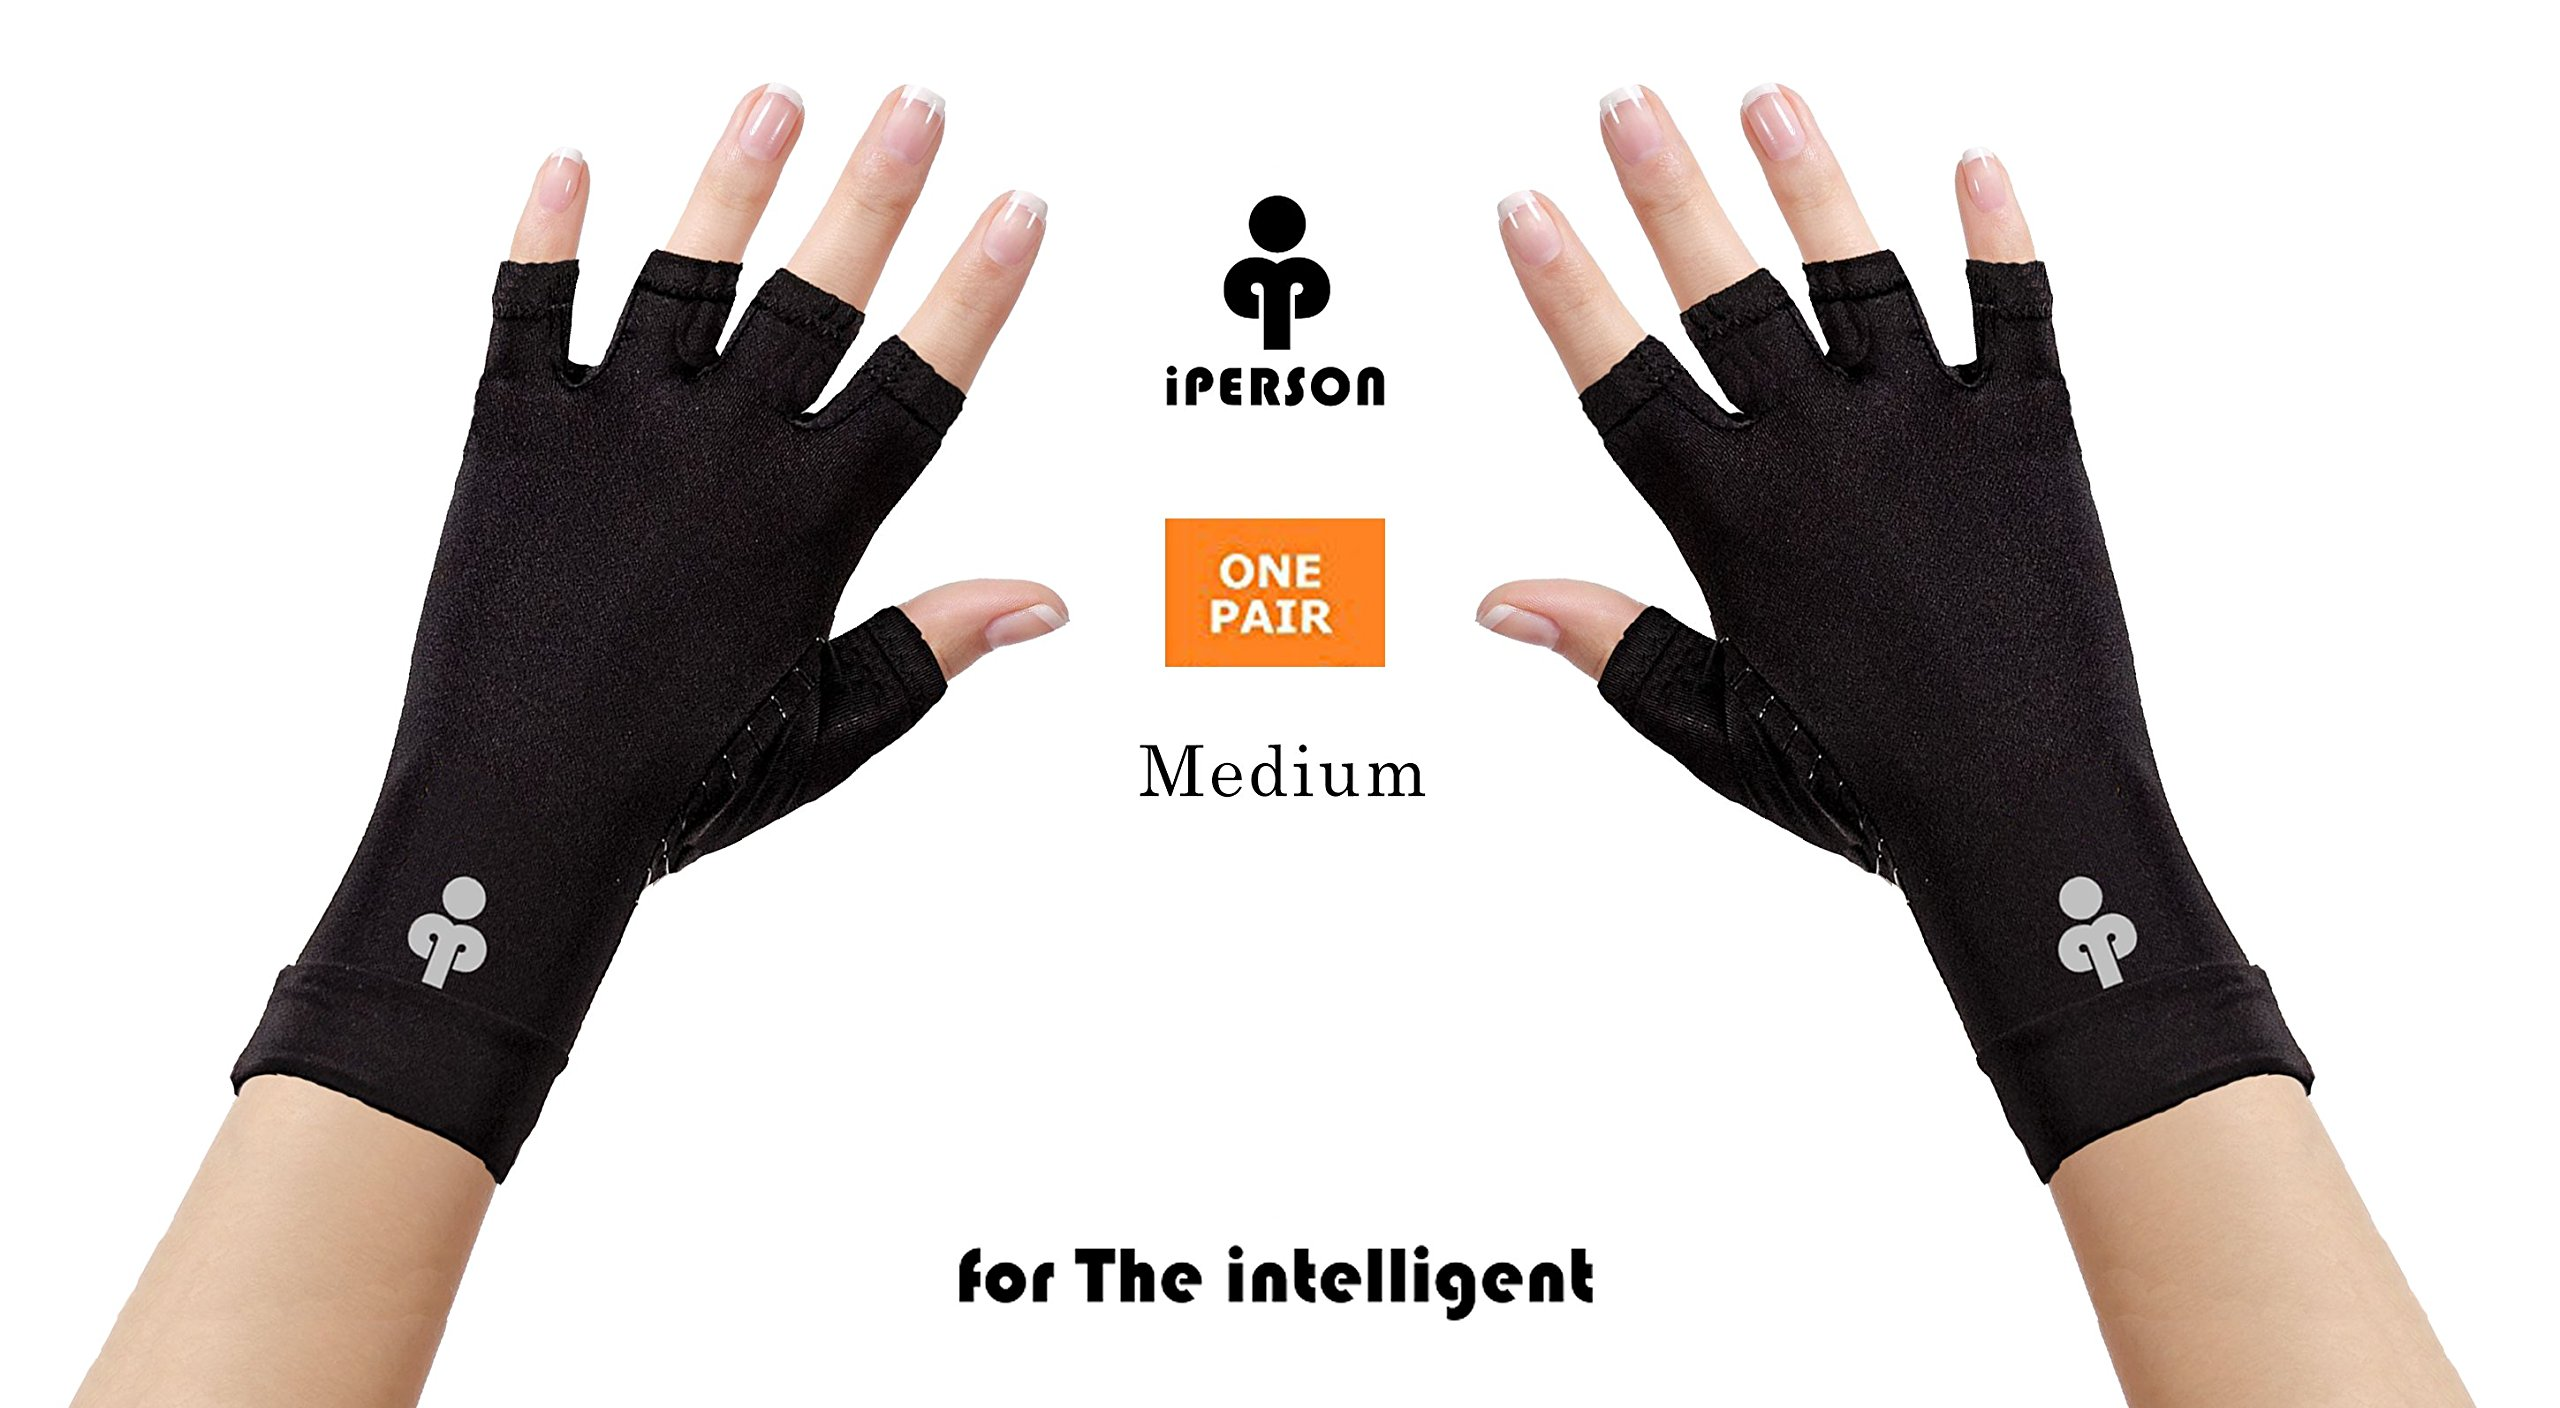 iPerson® Arthritis Gloves Copper Infused Compression GUARANTEED To Speed Up Recovery Relieve Symptoms of Arthritis RSI Carpal Tunnel Tendonitis for Men & Women - 1 Pair (Medium)